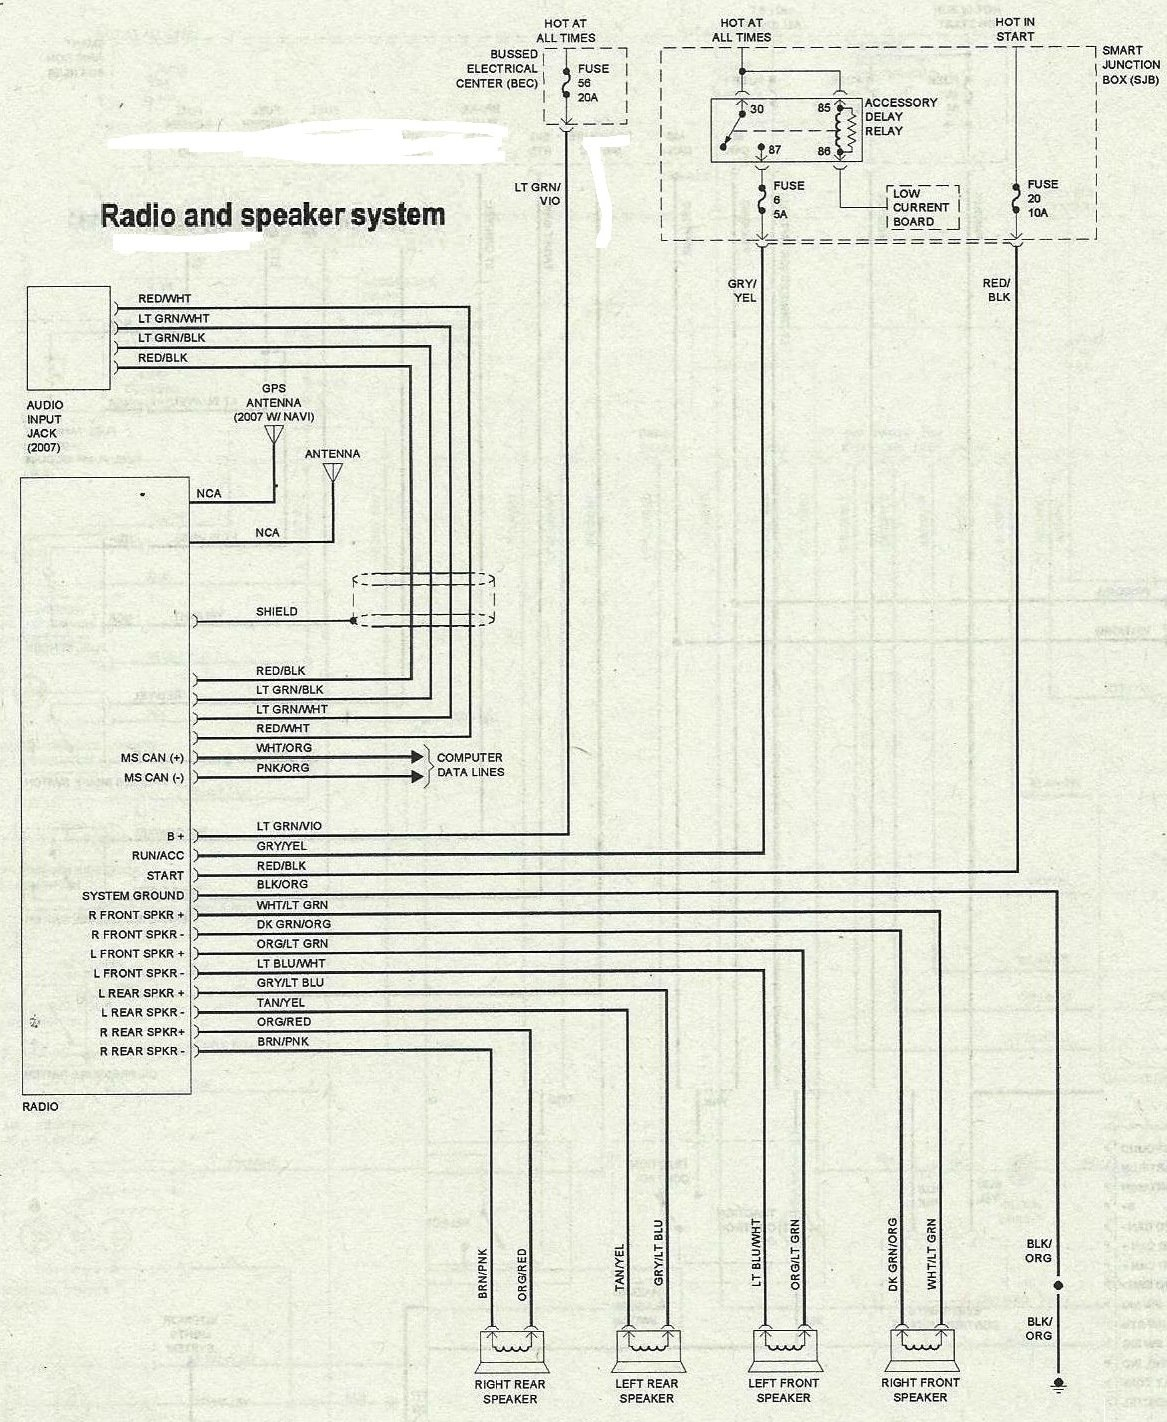 2007 Mustang Gt Wiring Product Wiring Diagrams \u2022 2007 GMC Radio Wiring  Diagram 2007 Mustang Gt Radio Wiring Diagram